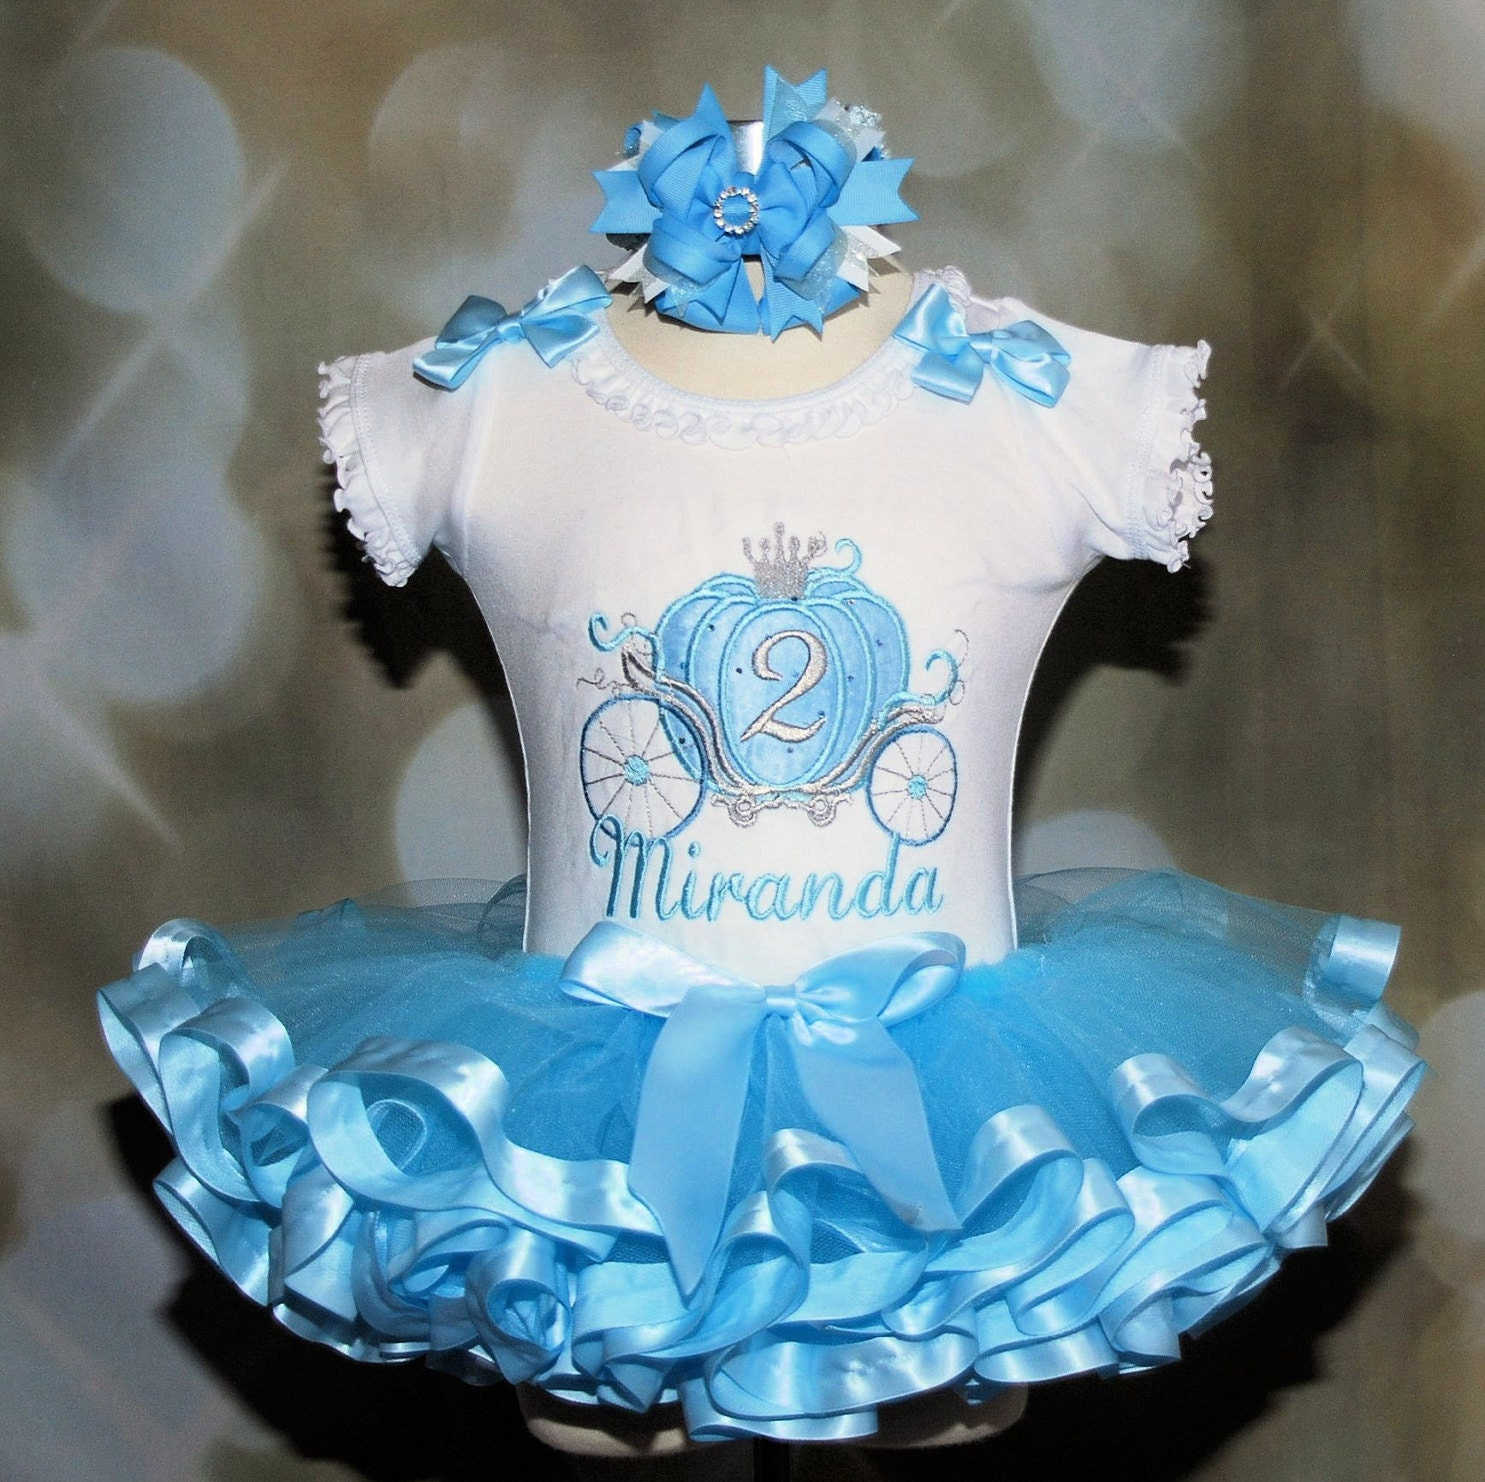 Princess Birthday outfit 2nd birthday girl outfit cake smash outfit princess tutu 1st birthday dress Cinderella dress birthday princess